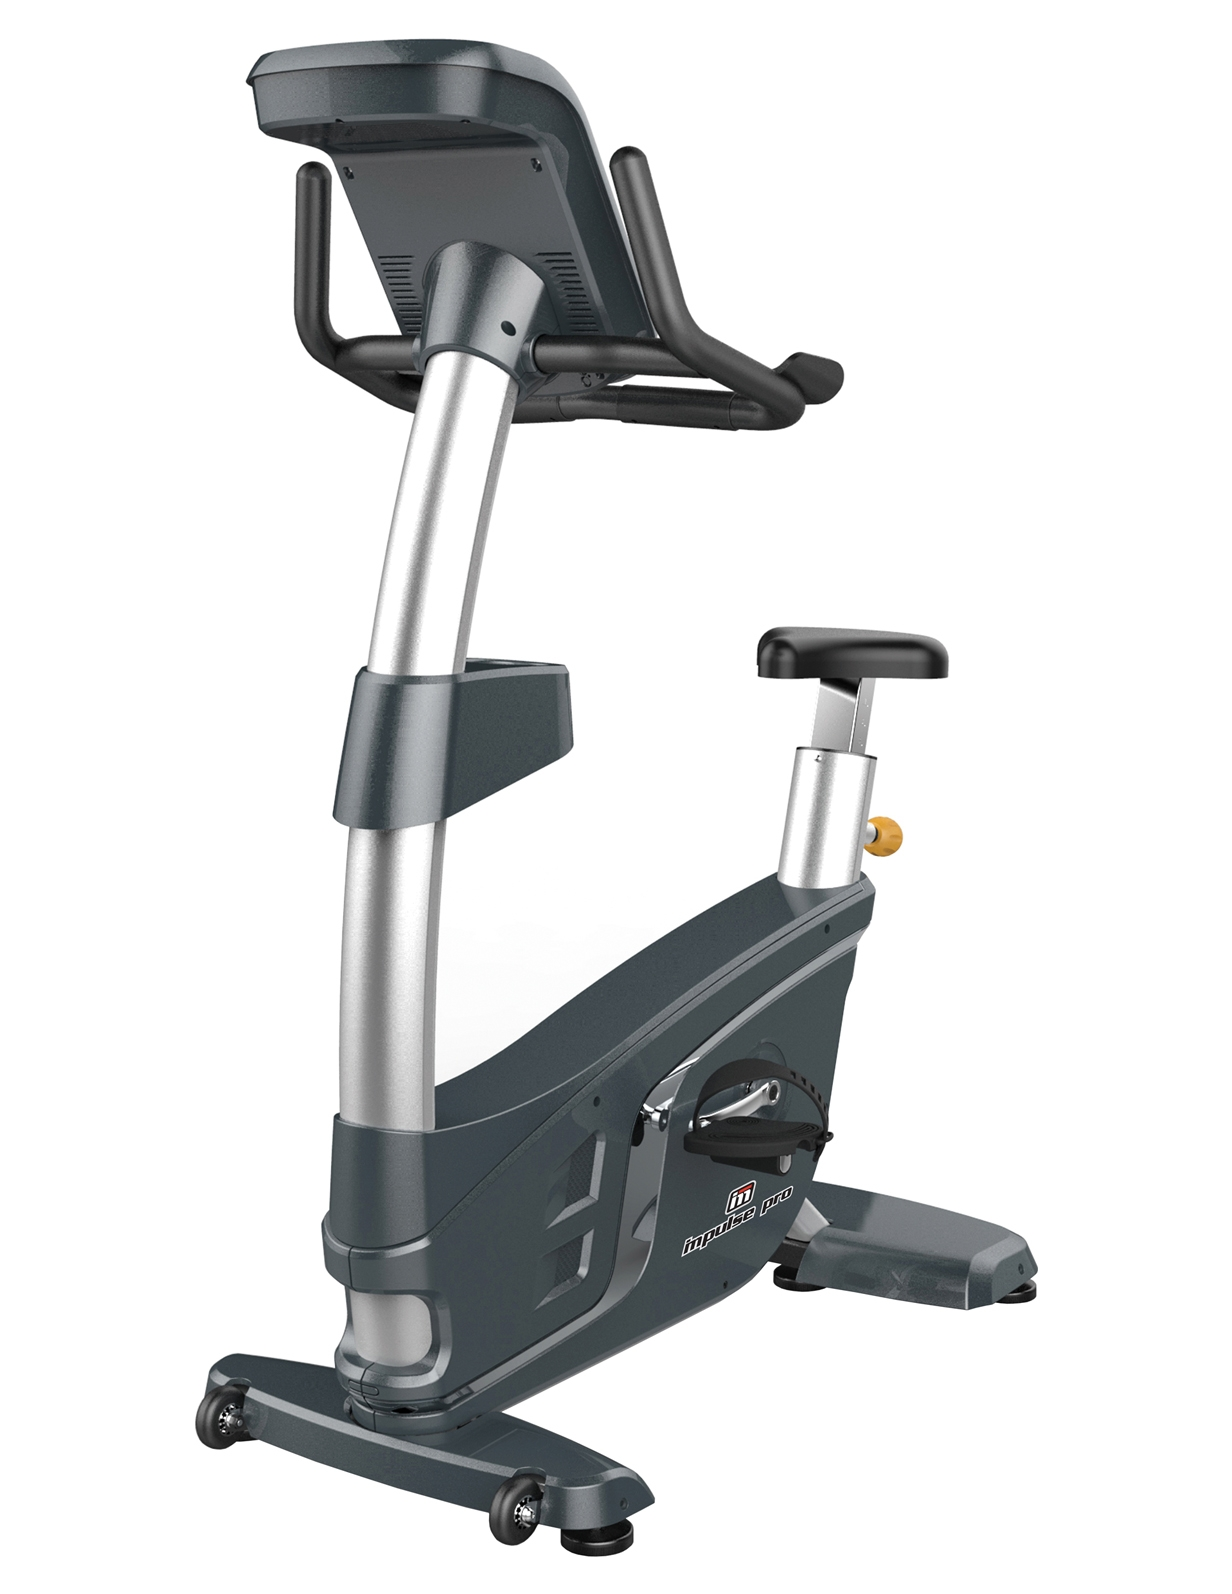 RU500 UPRIGHT BIKE